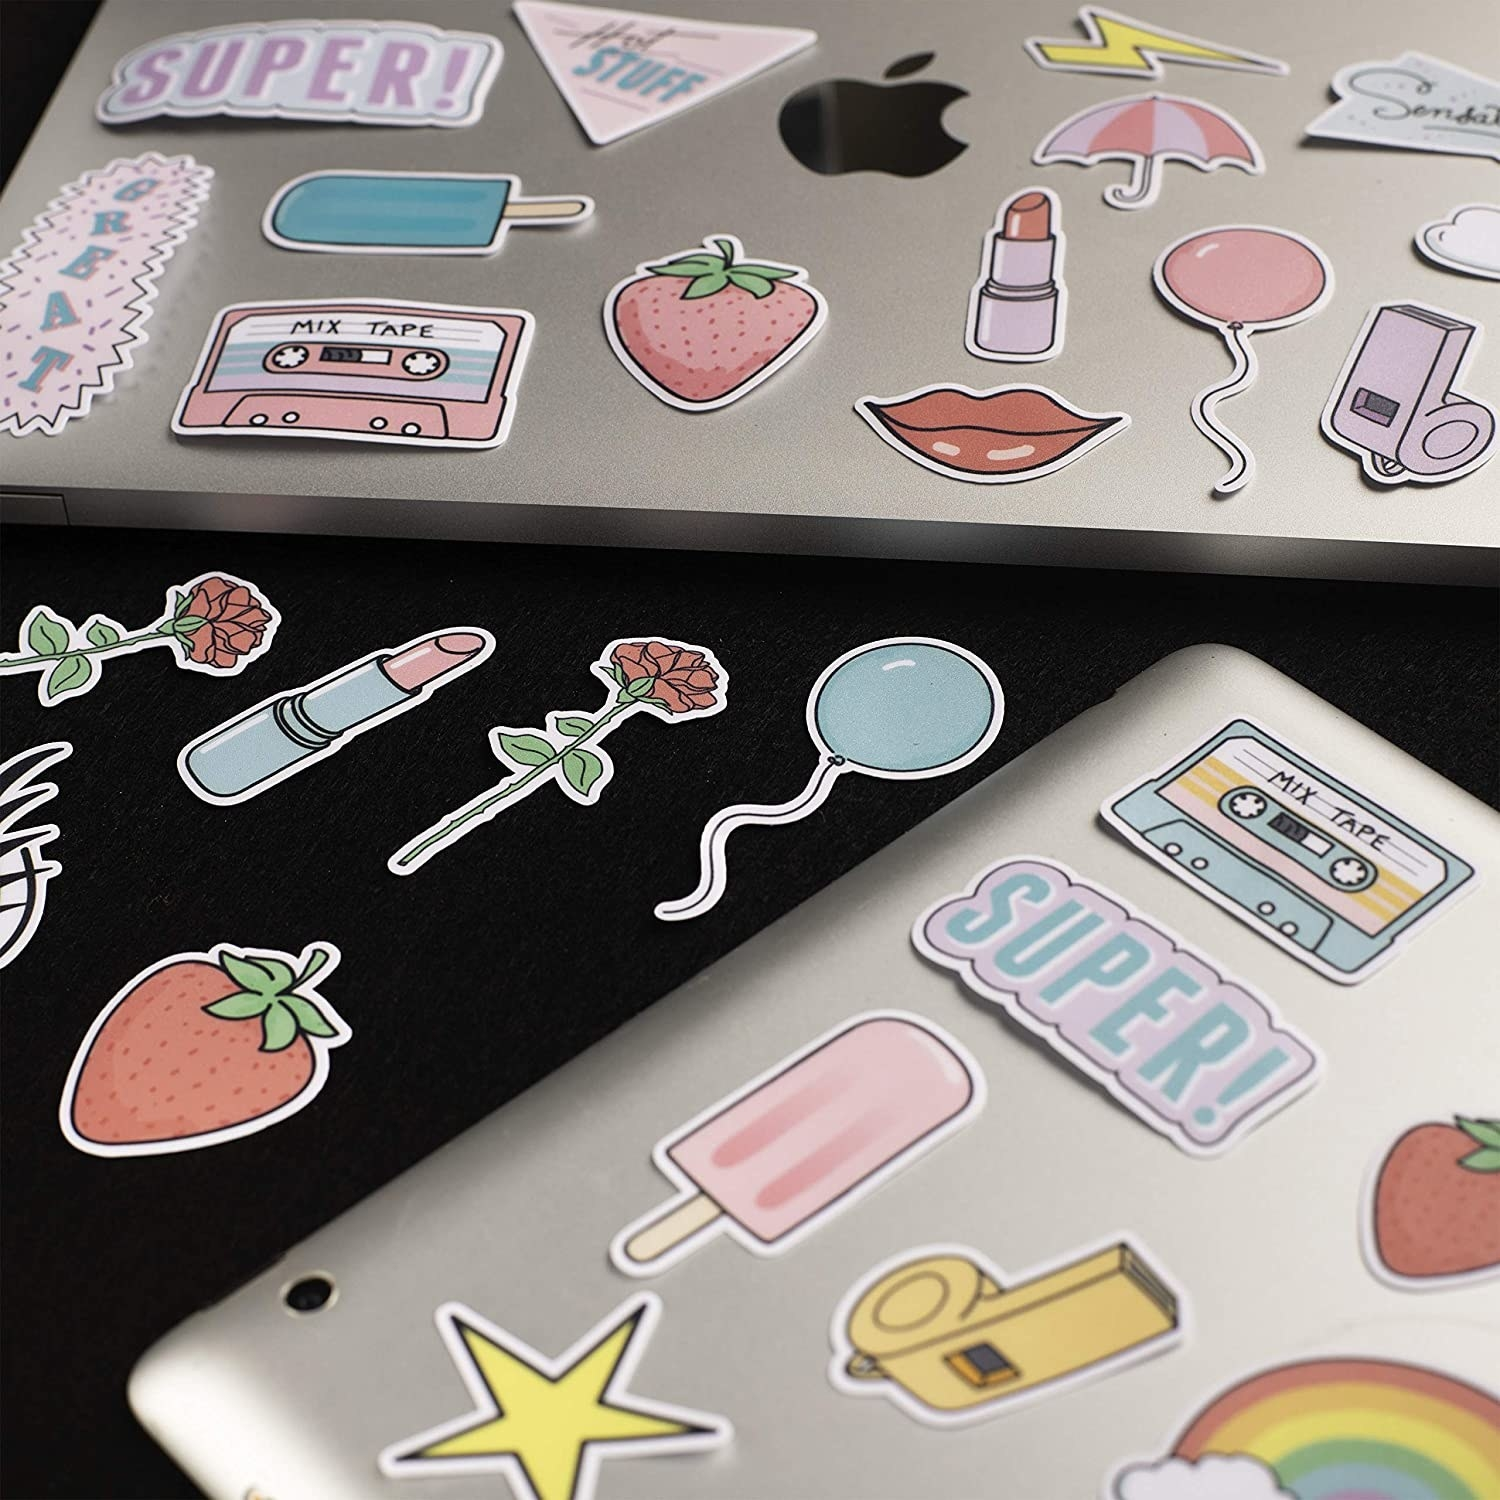 Several stickers on two laptop computers